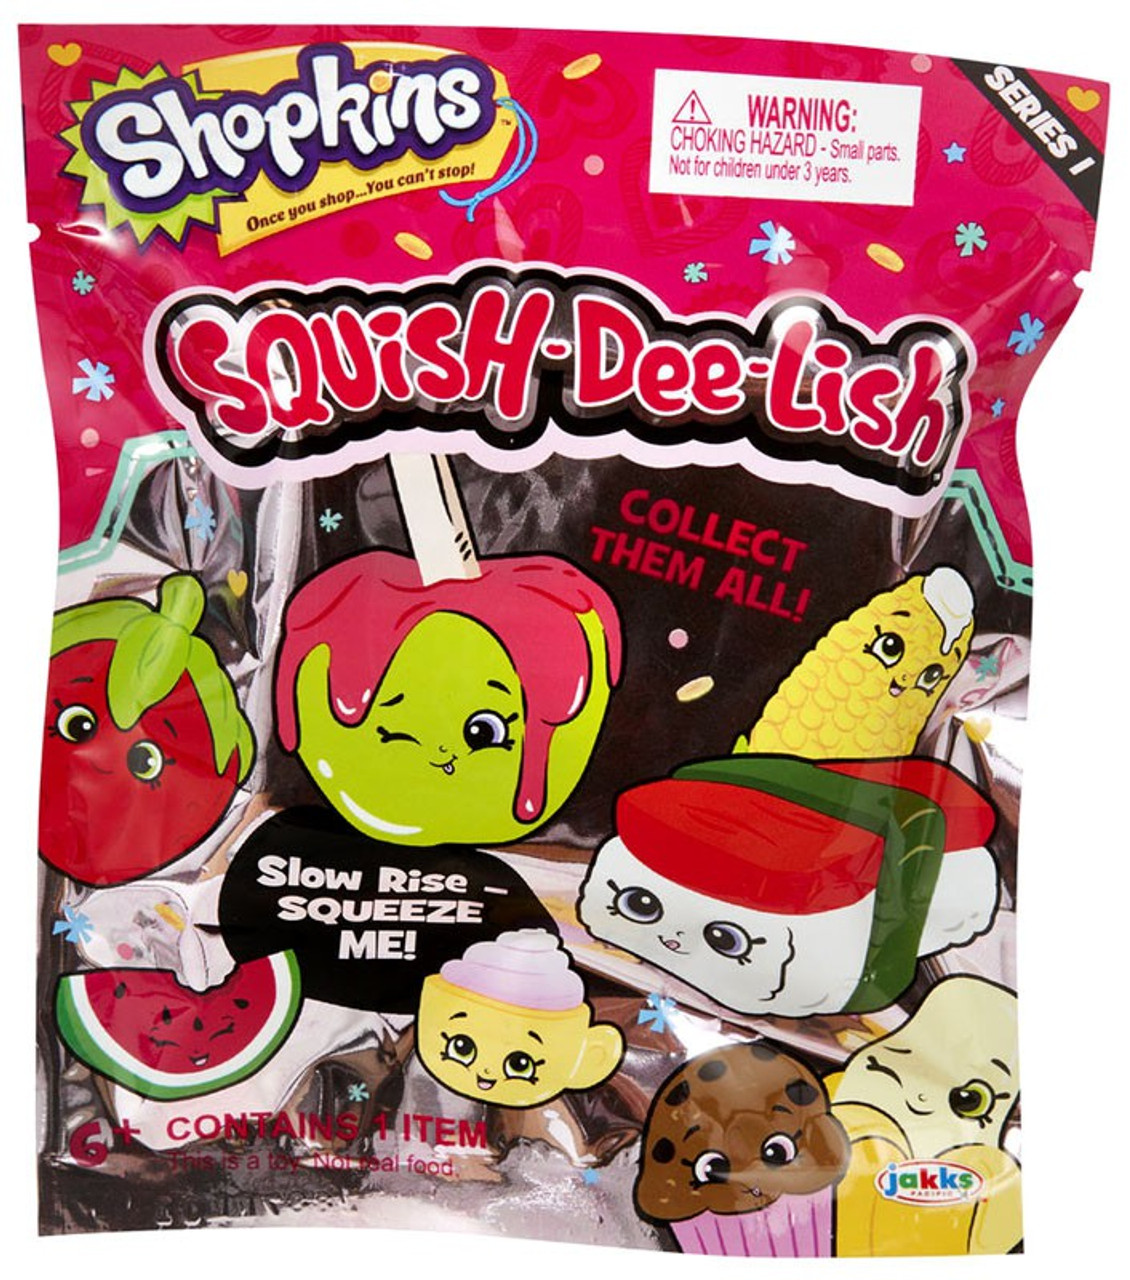 Squish Delish Wacky Series : Squish-Dee-Lish Shopkins Series 1 Mystery Pack Jakks Pacific - ToyWiz